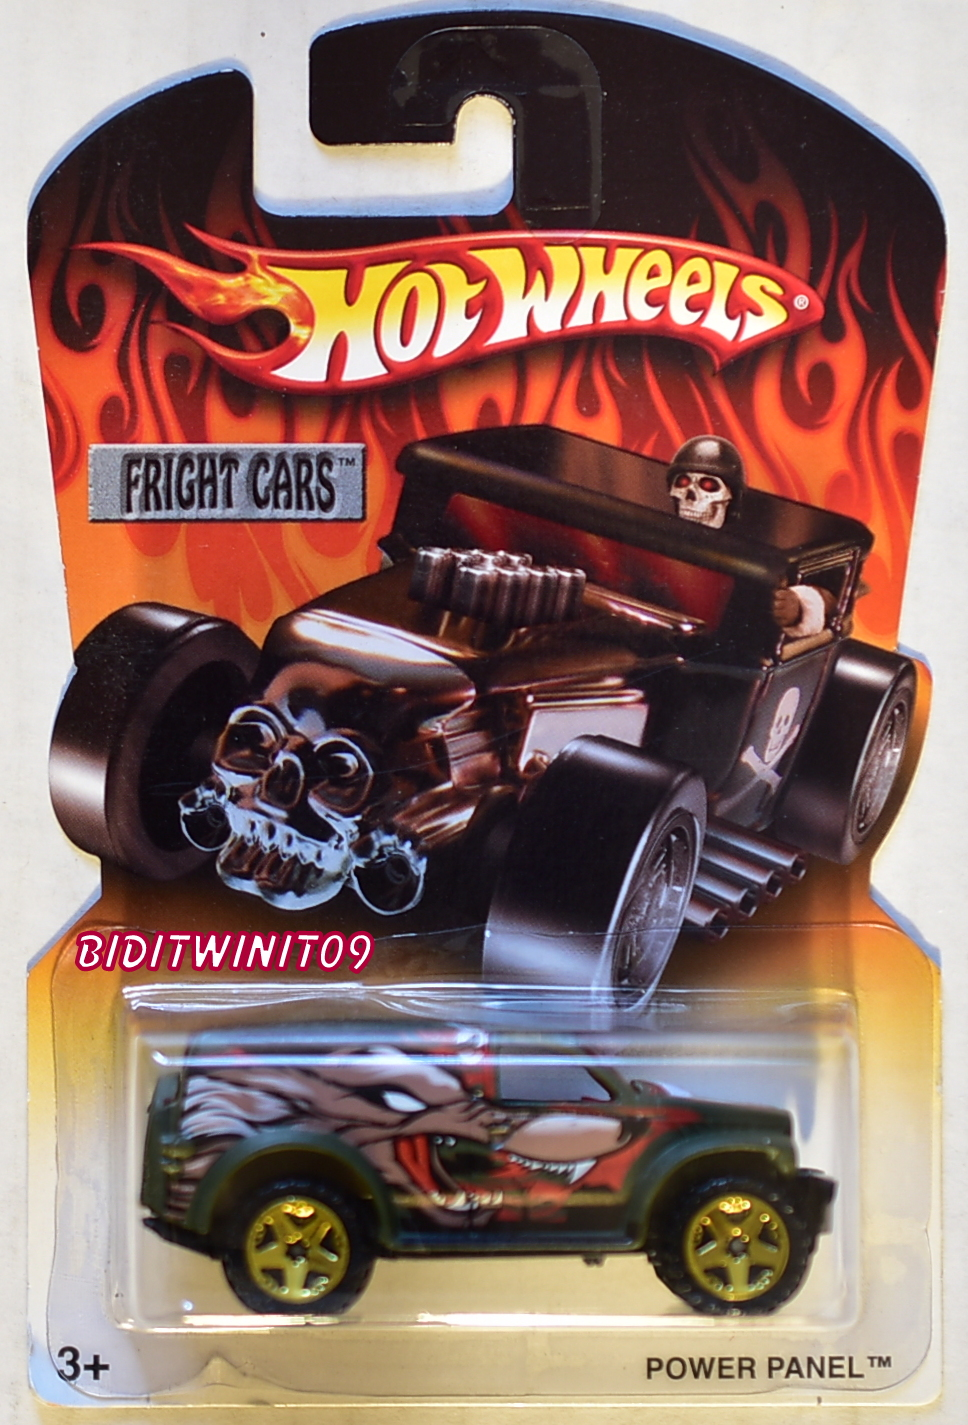 HOT WHEELS FRIGHT CARS POWER PANEL E+